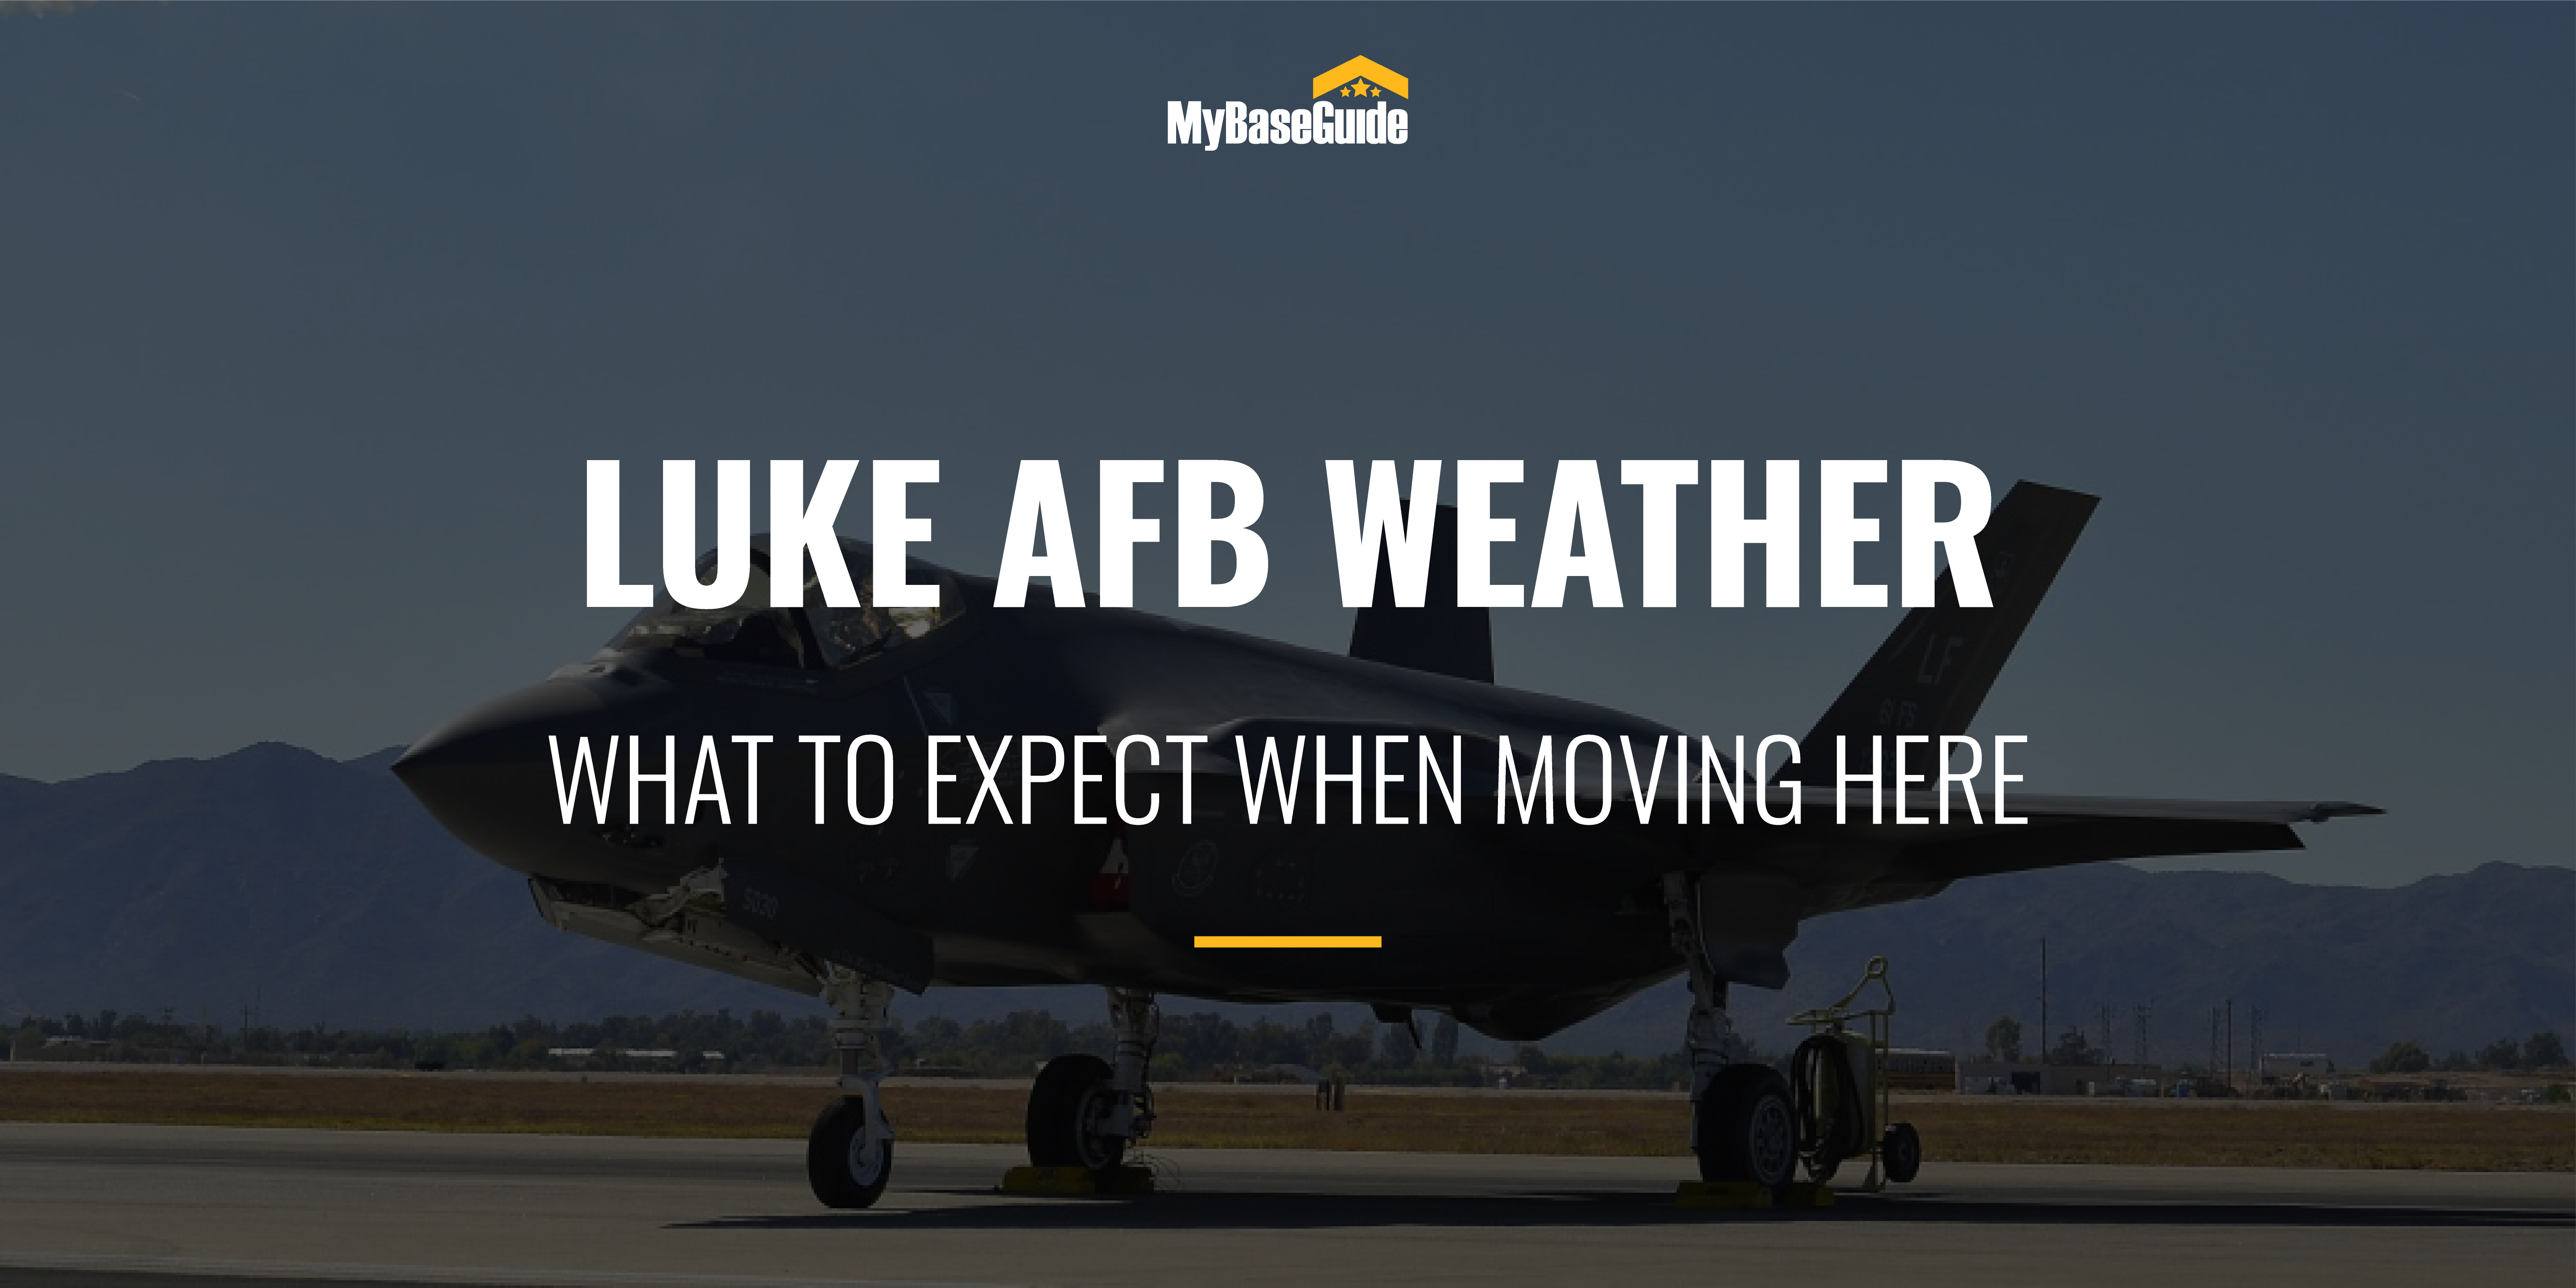 Luke AFB Weather: What To Expect When Moving Here